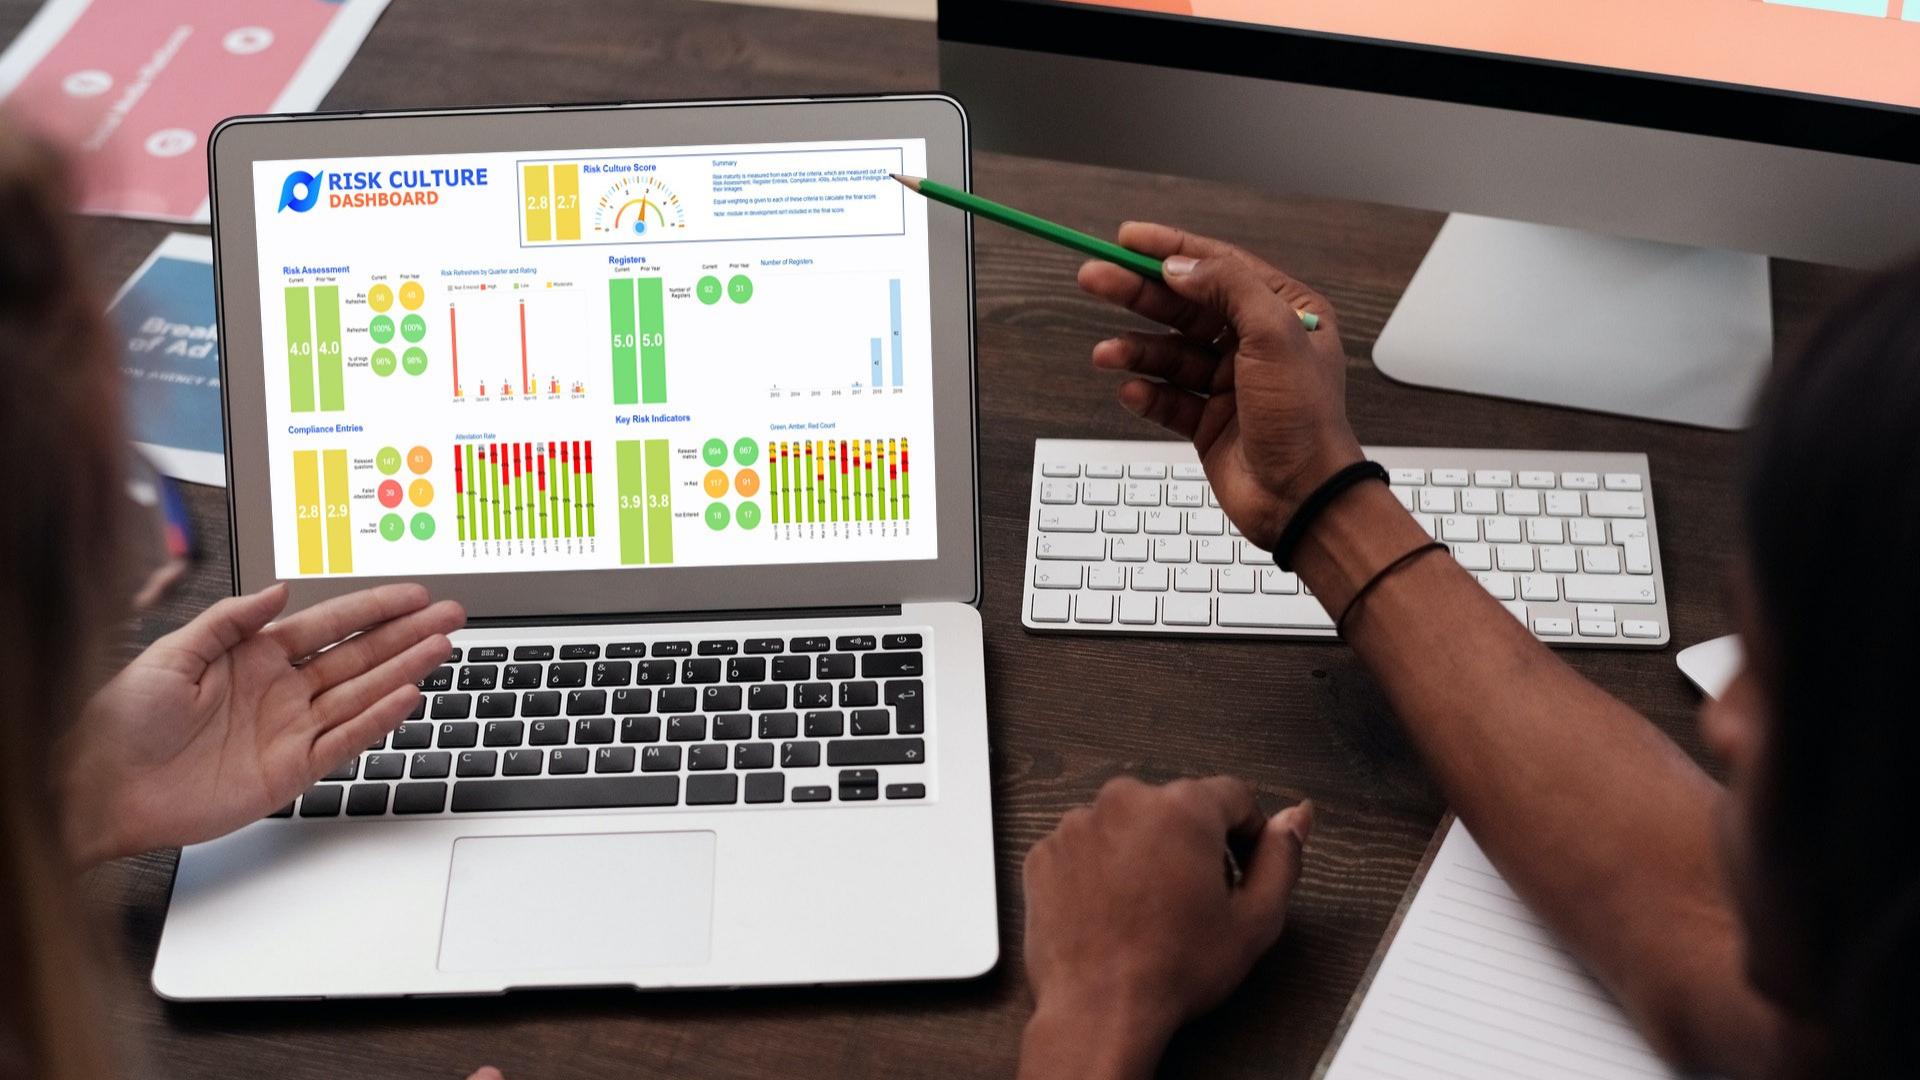 Culture and Conduct Risk Management: Bringing it to life with Metrics and Dashboards webinar featured image